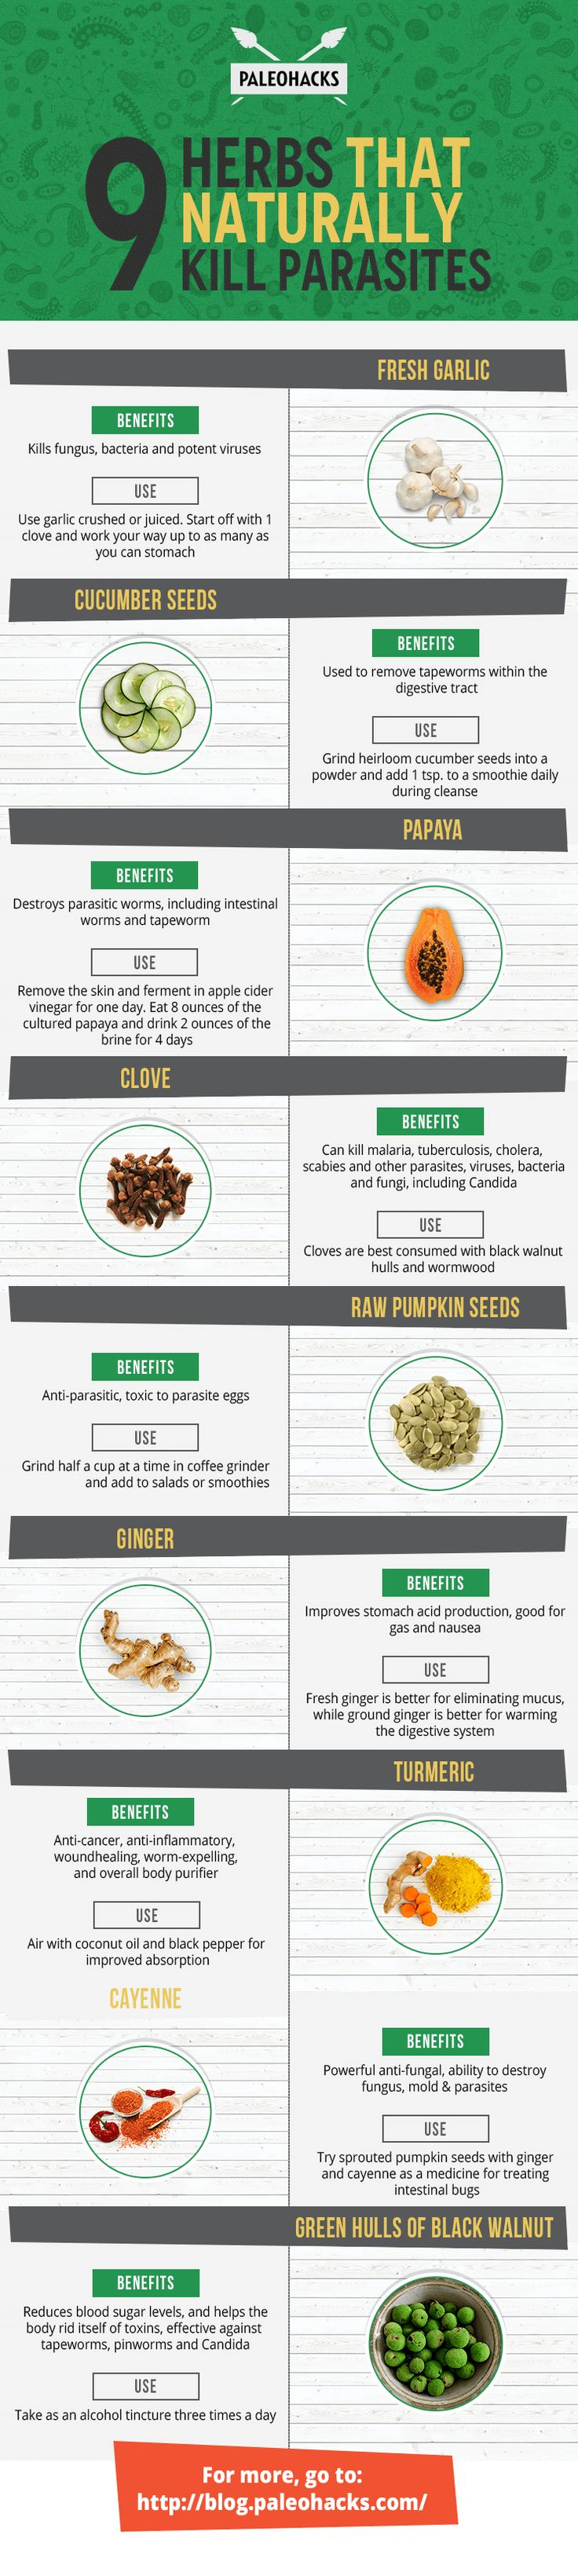 These natural remedies fight parasites lurking in your body.